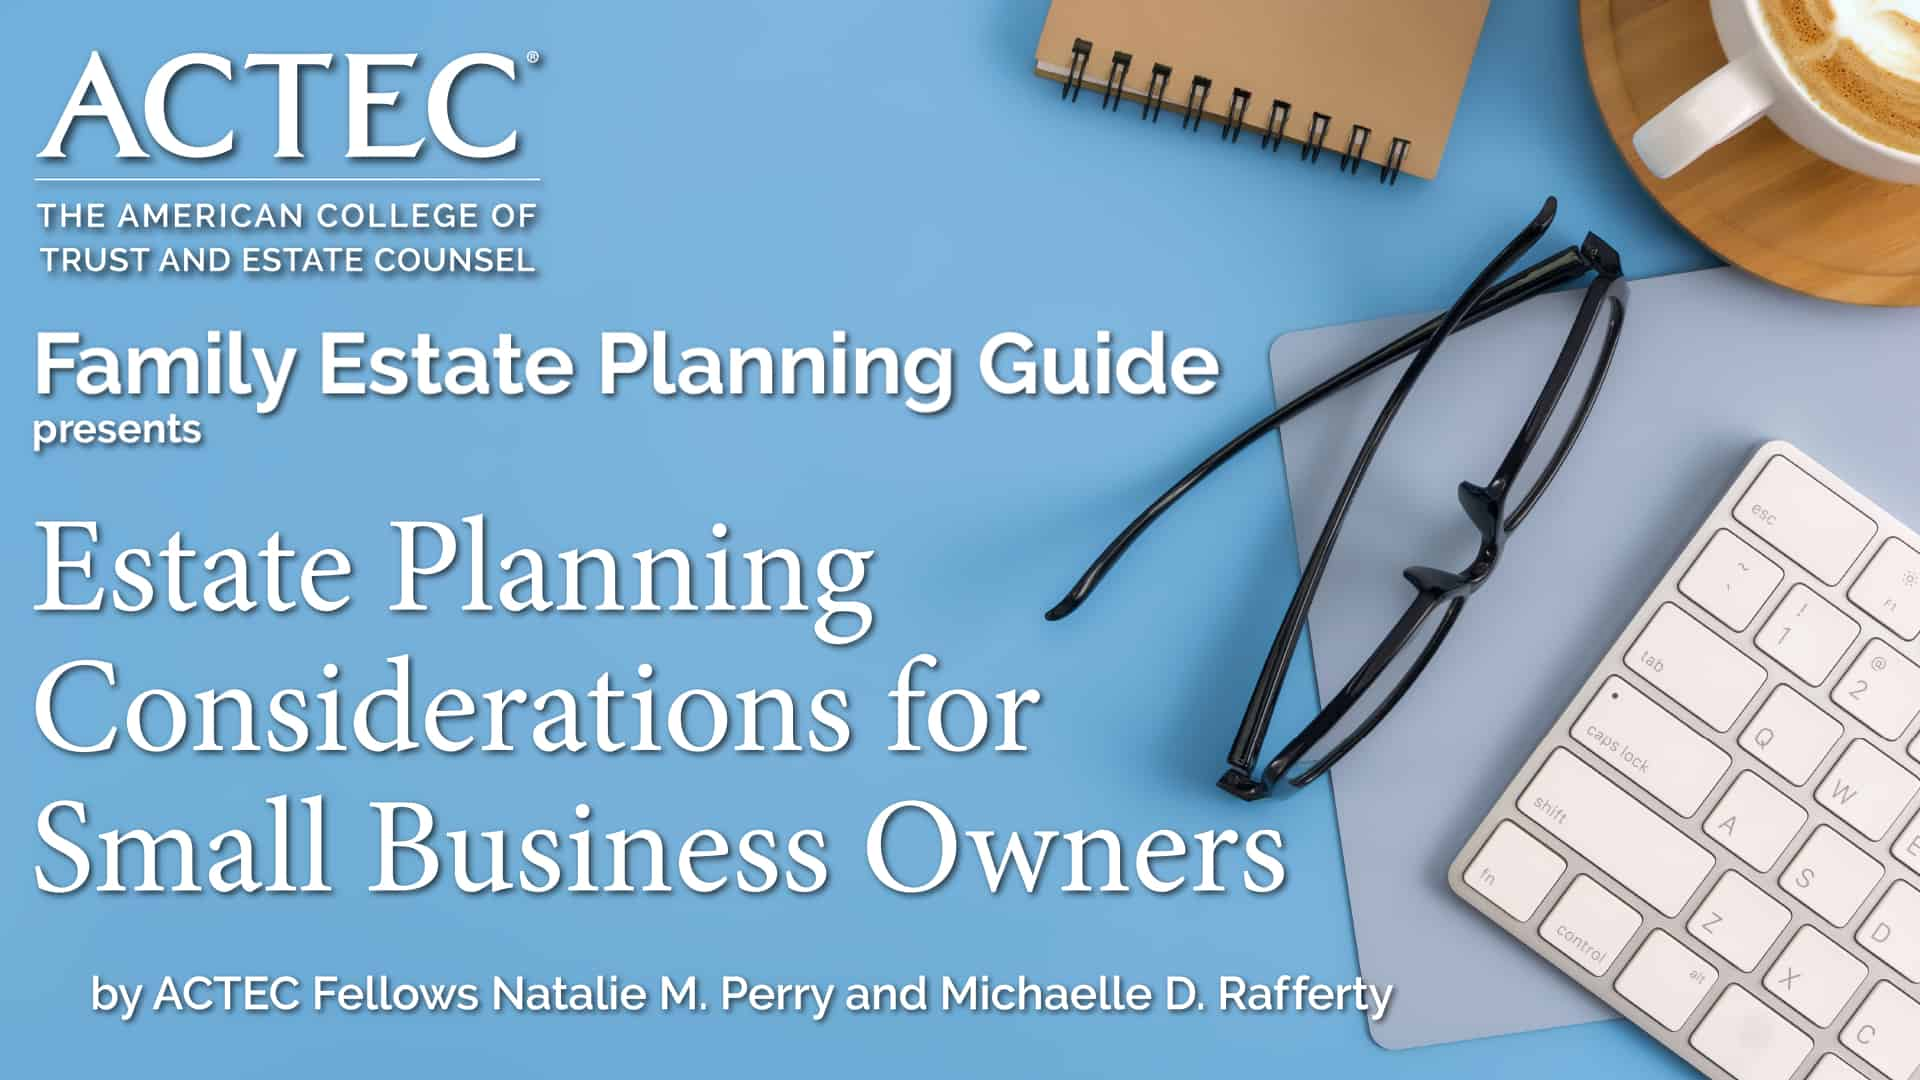 Estate Planning Considerations for Small Business Owners